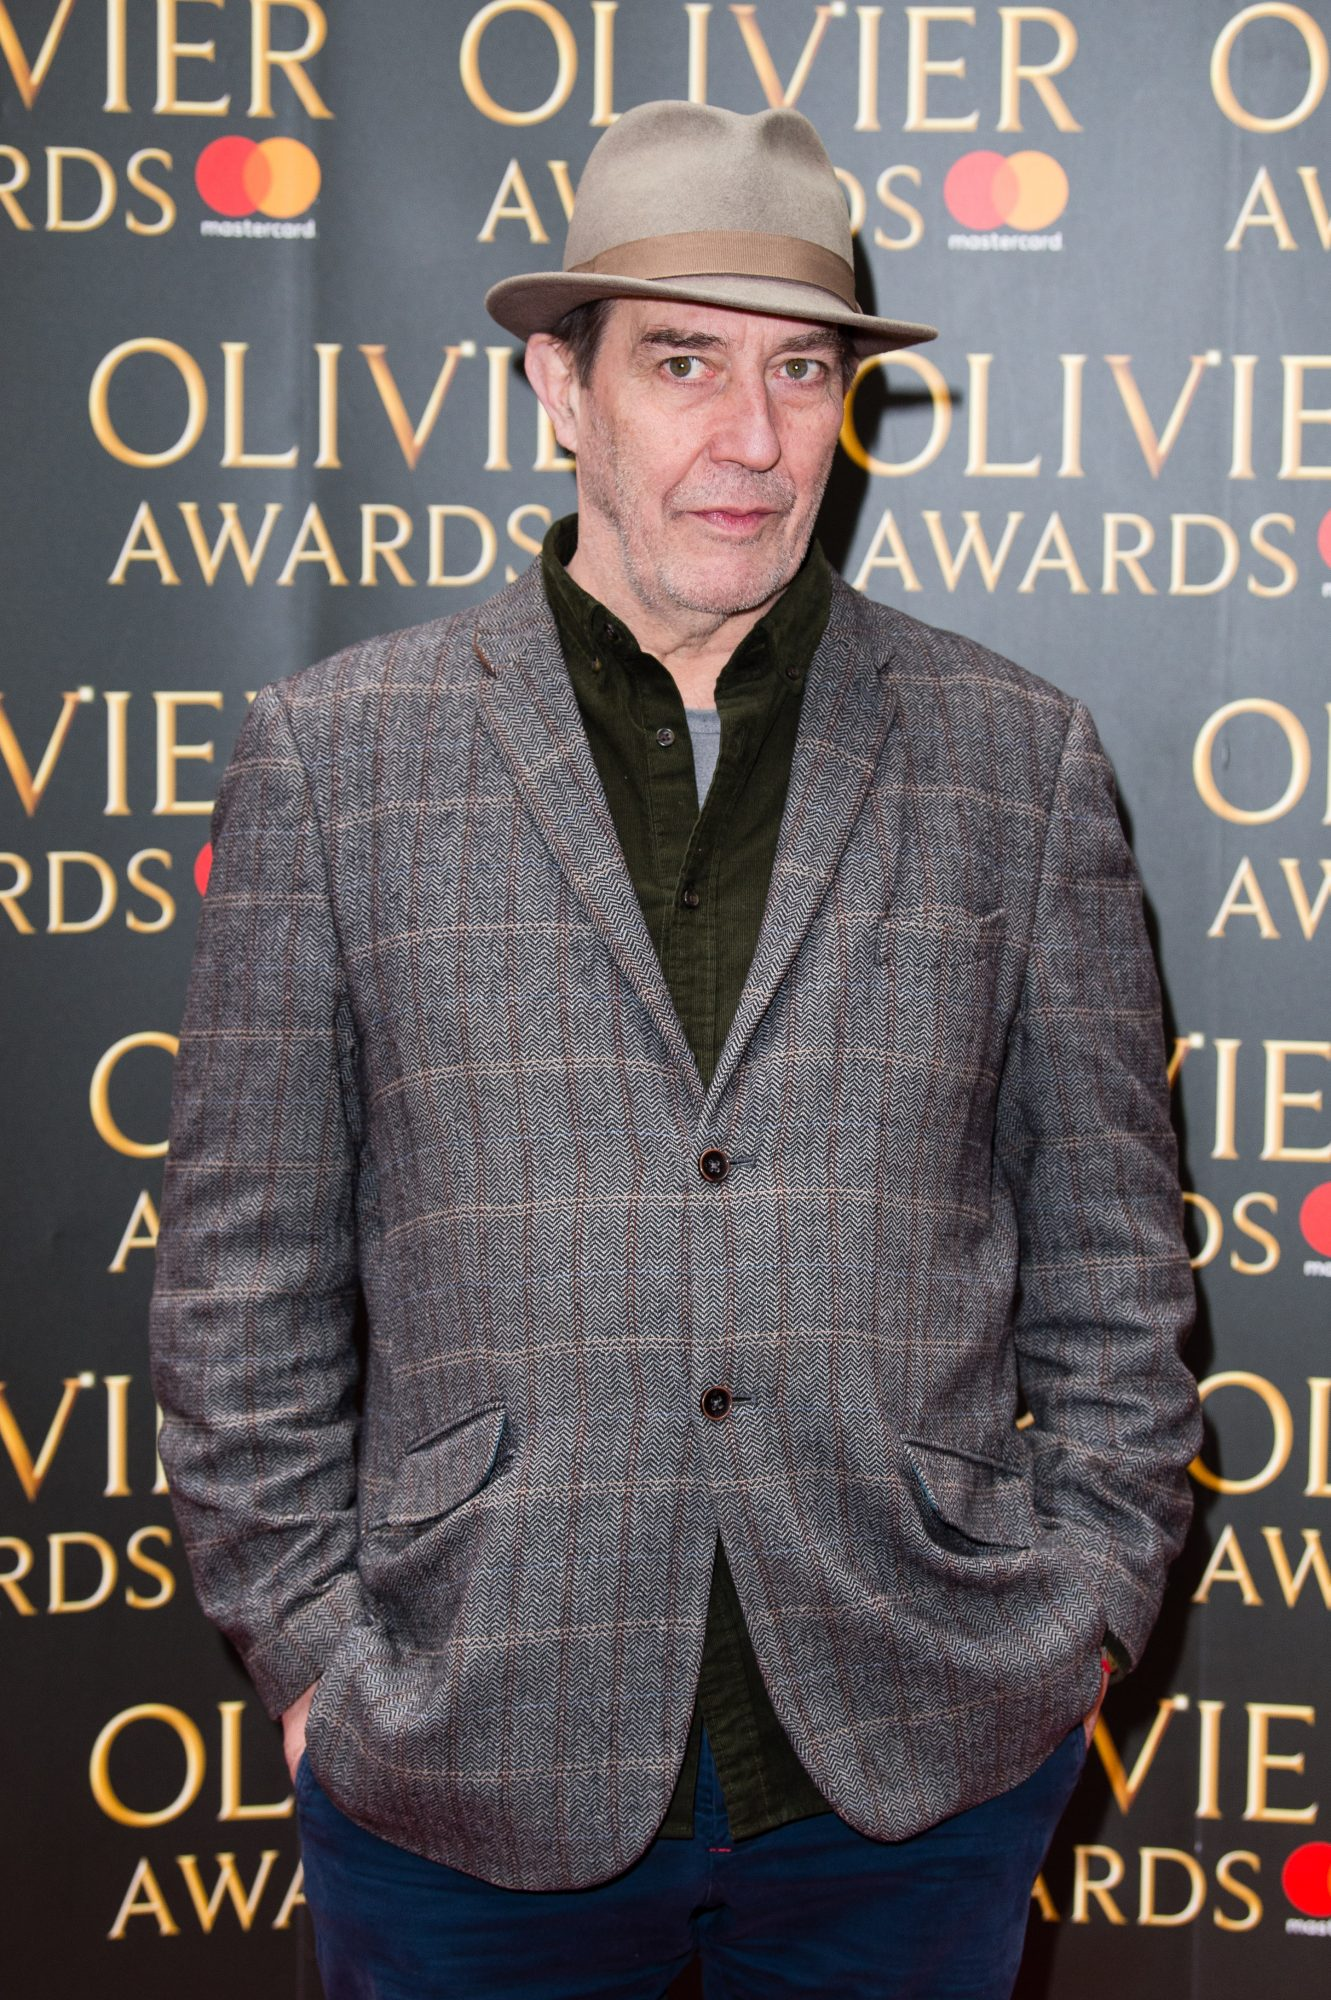 LONDON, ENGLAND - MARCH 09:  Ciaran Hinds attends the Olivier Awards nominations celebration at Rosewood Hotel on March 9, 2018 in London, England.  (Photo by Jeff Spicer/Getty Images)